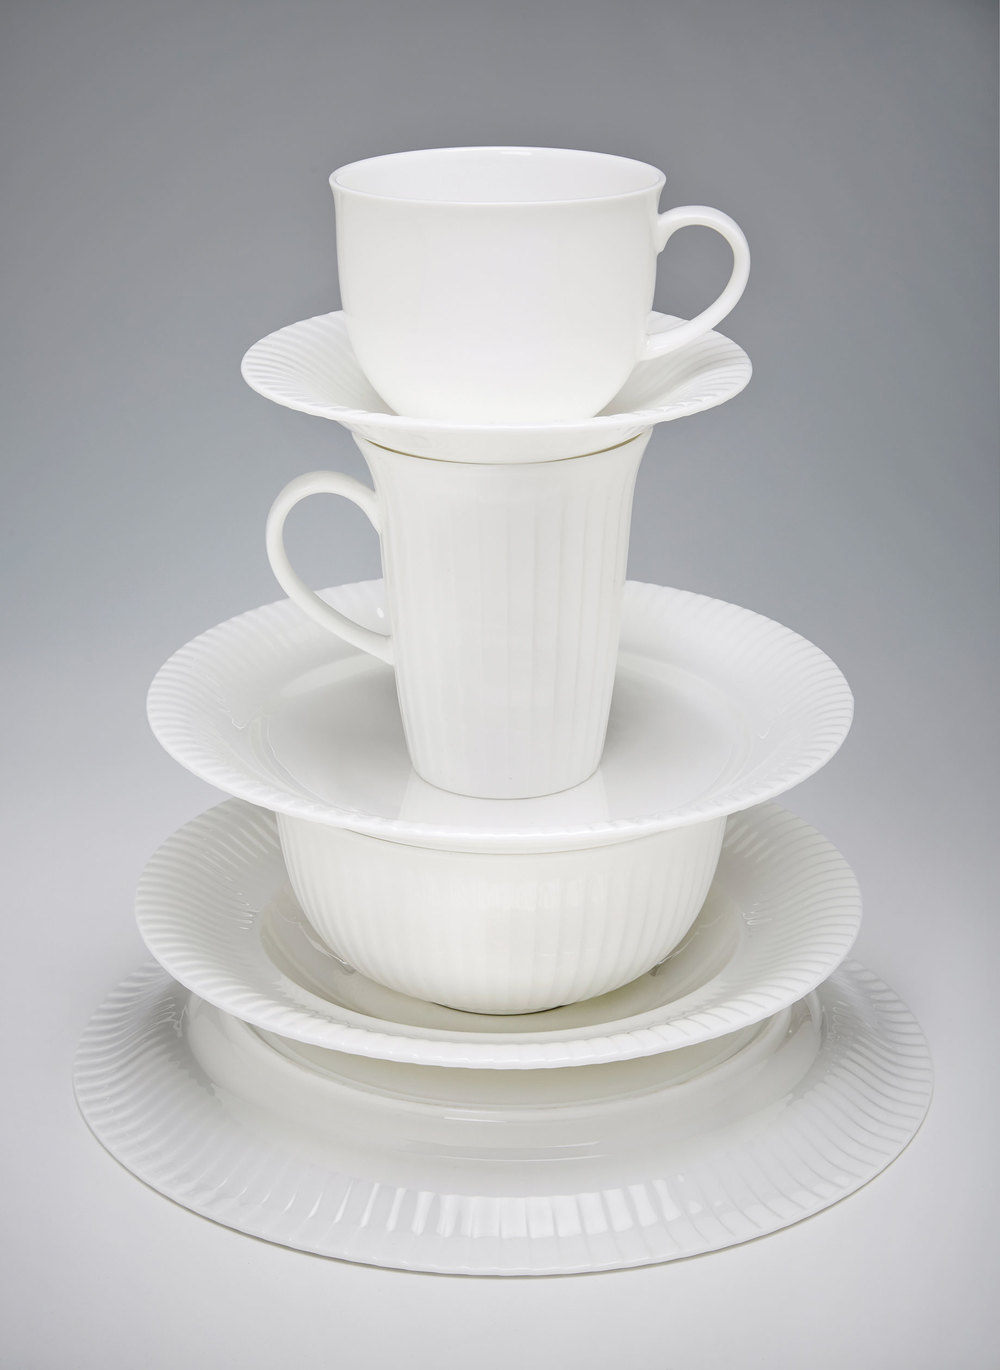 \ Olivia\  Bone China dinnerware for Crate and Barrel. \  : crate and barrel porcelain dinnerware - pezcame.com